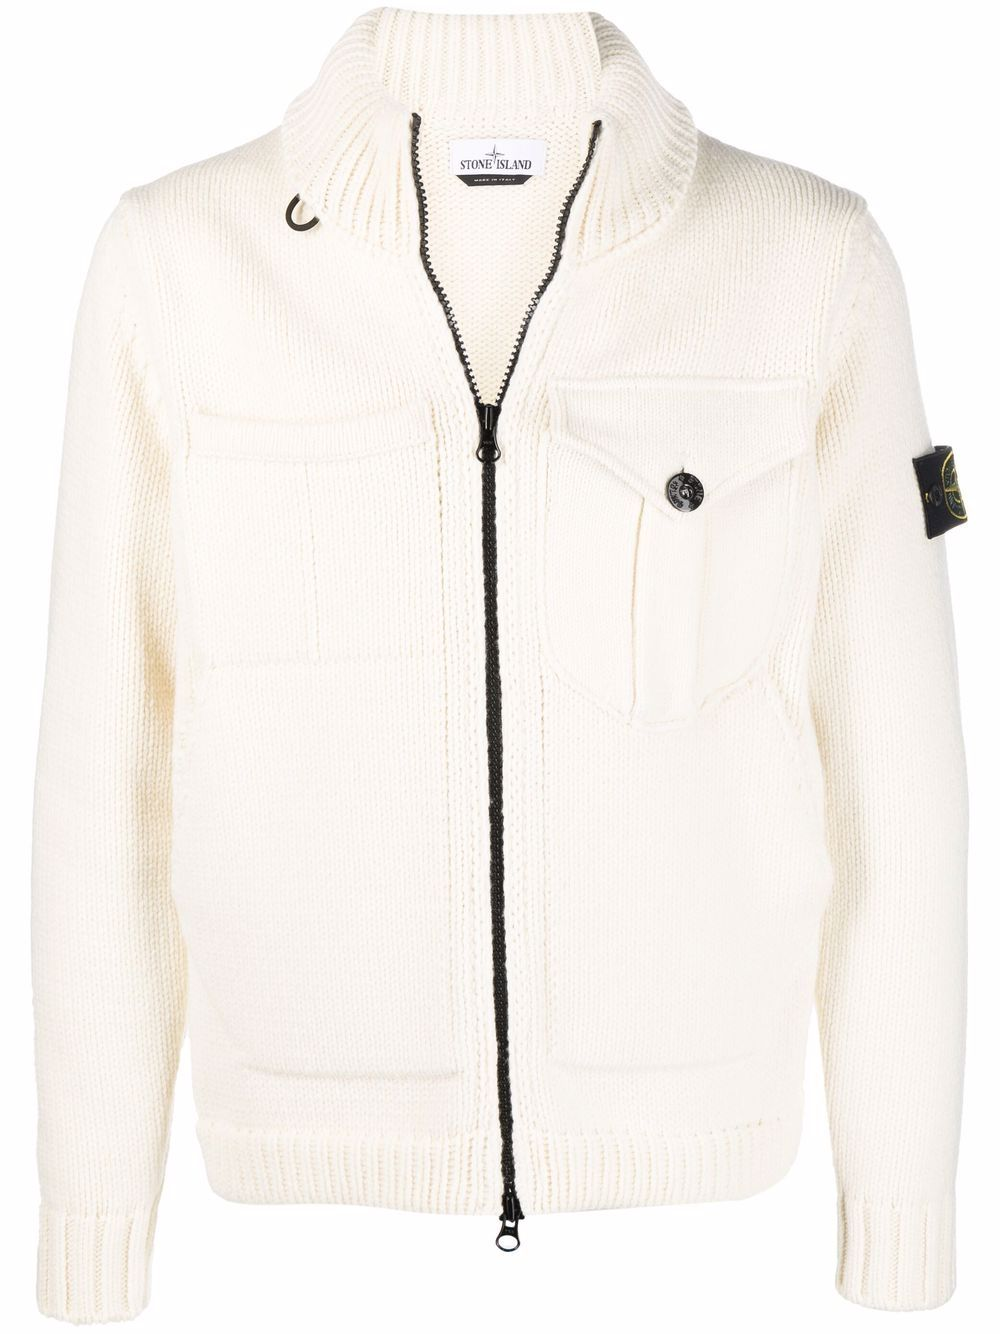 <p class='small-title'>STONE ISLAND</p>Knitted Jacket